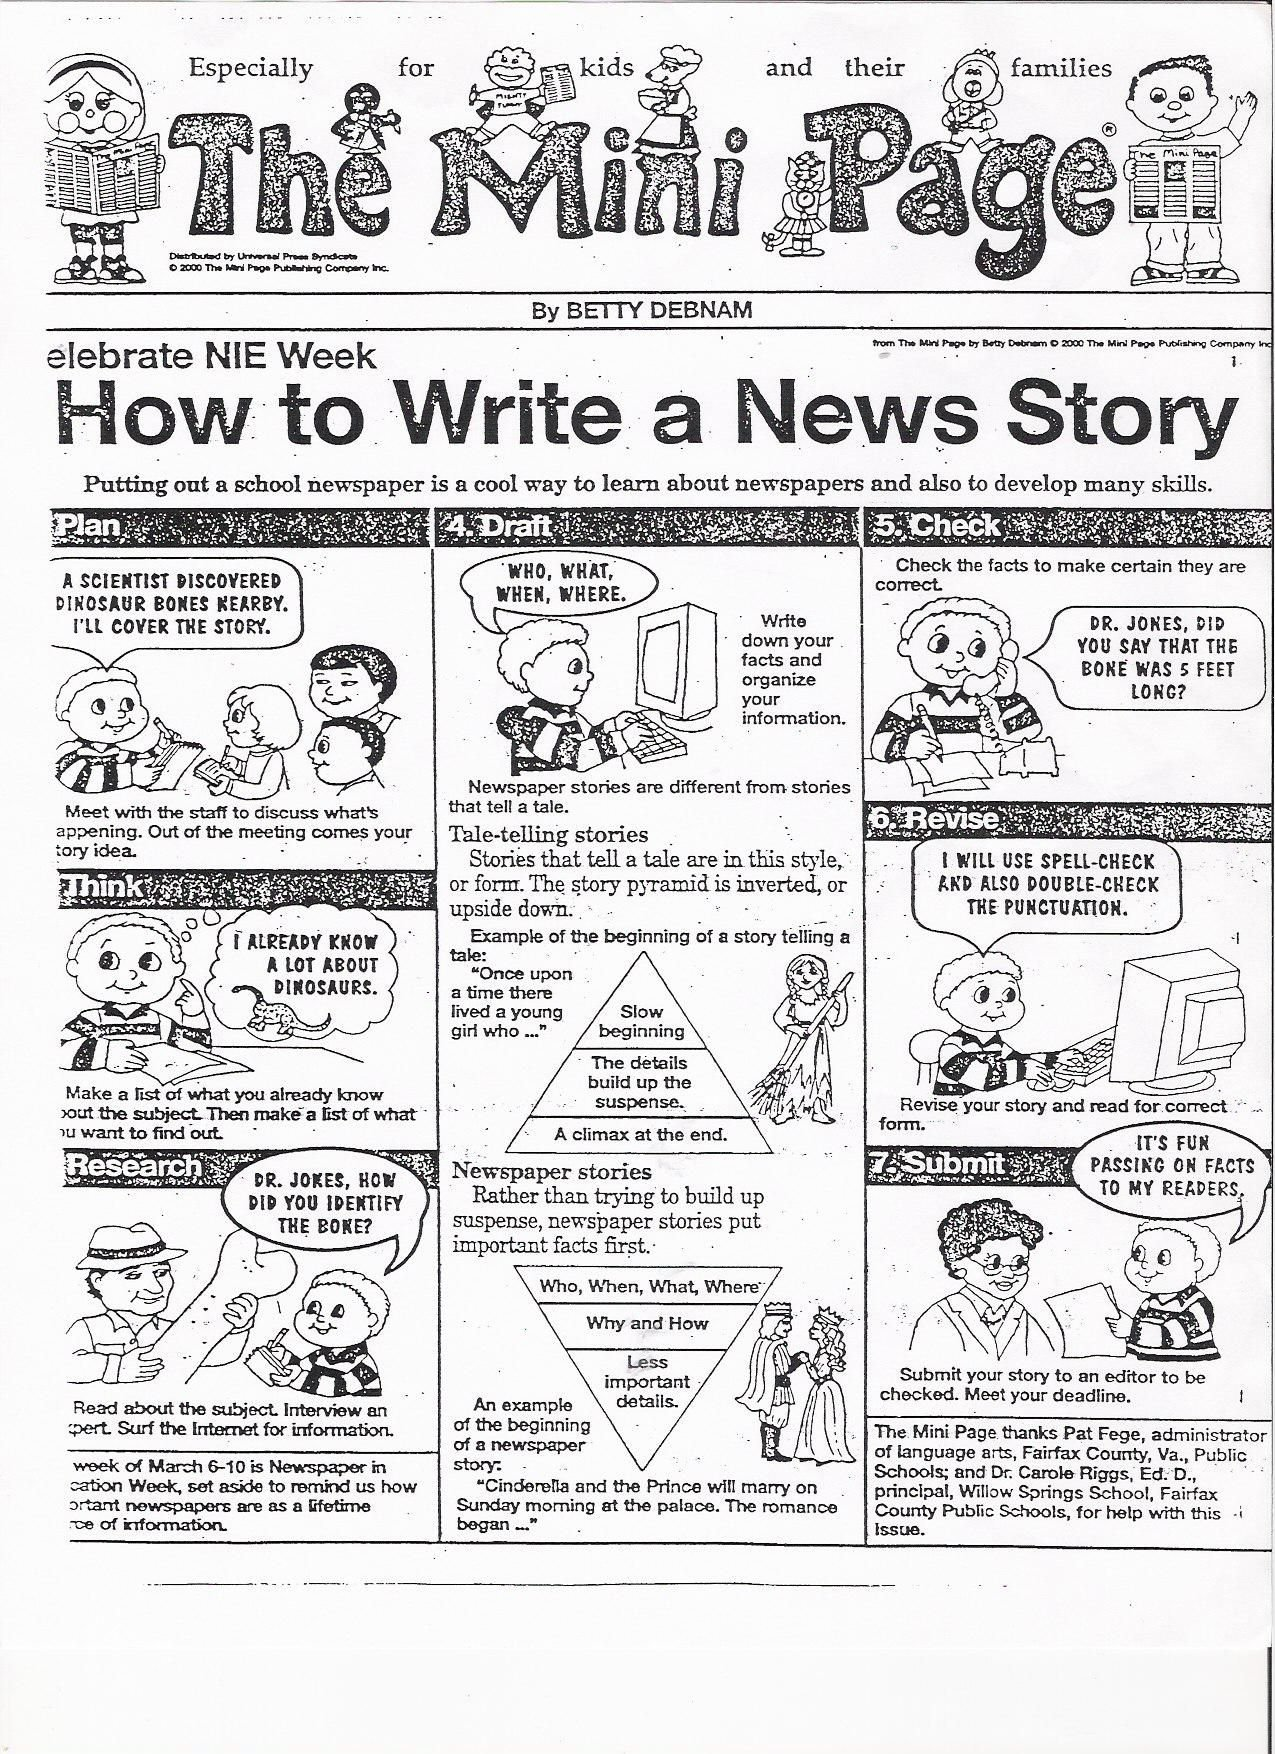 10 Attractive Middle School Newspaper Article Ideas how to make money writing articles newspaper cartoon and programming 2021